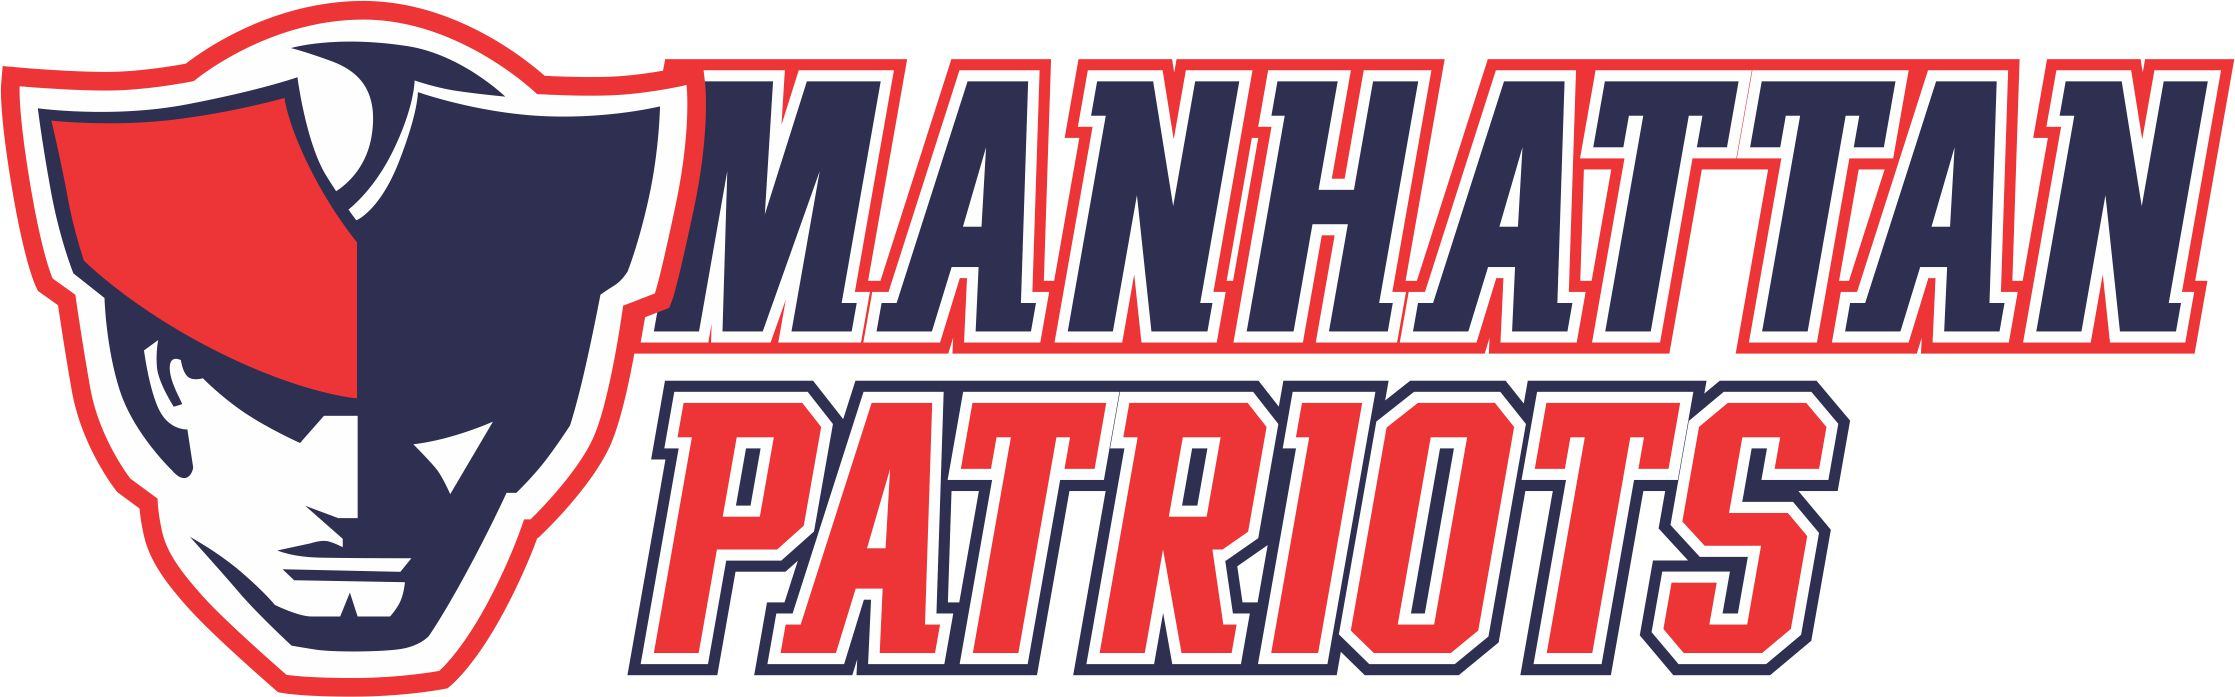 Manhattan Patriots, Football, Goal, Field